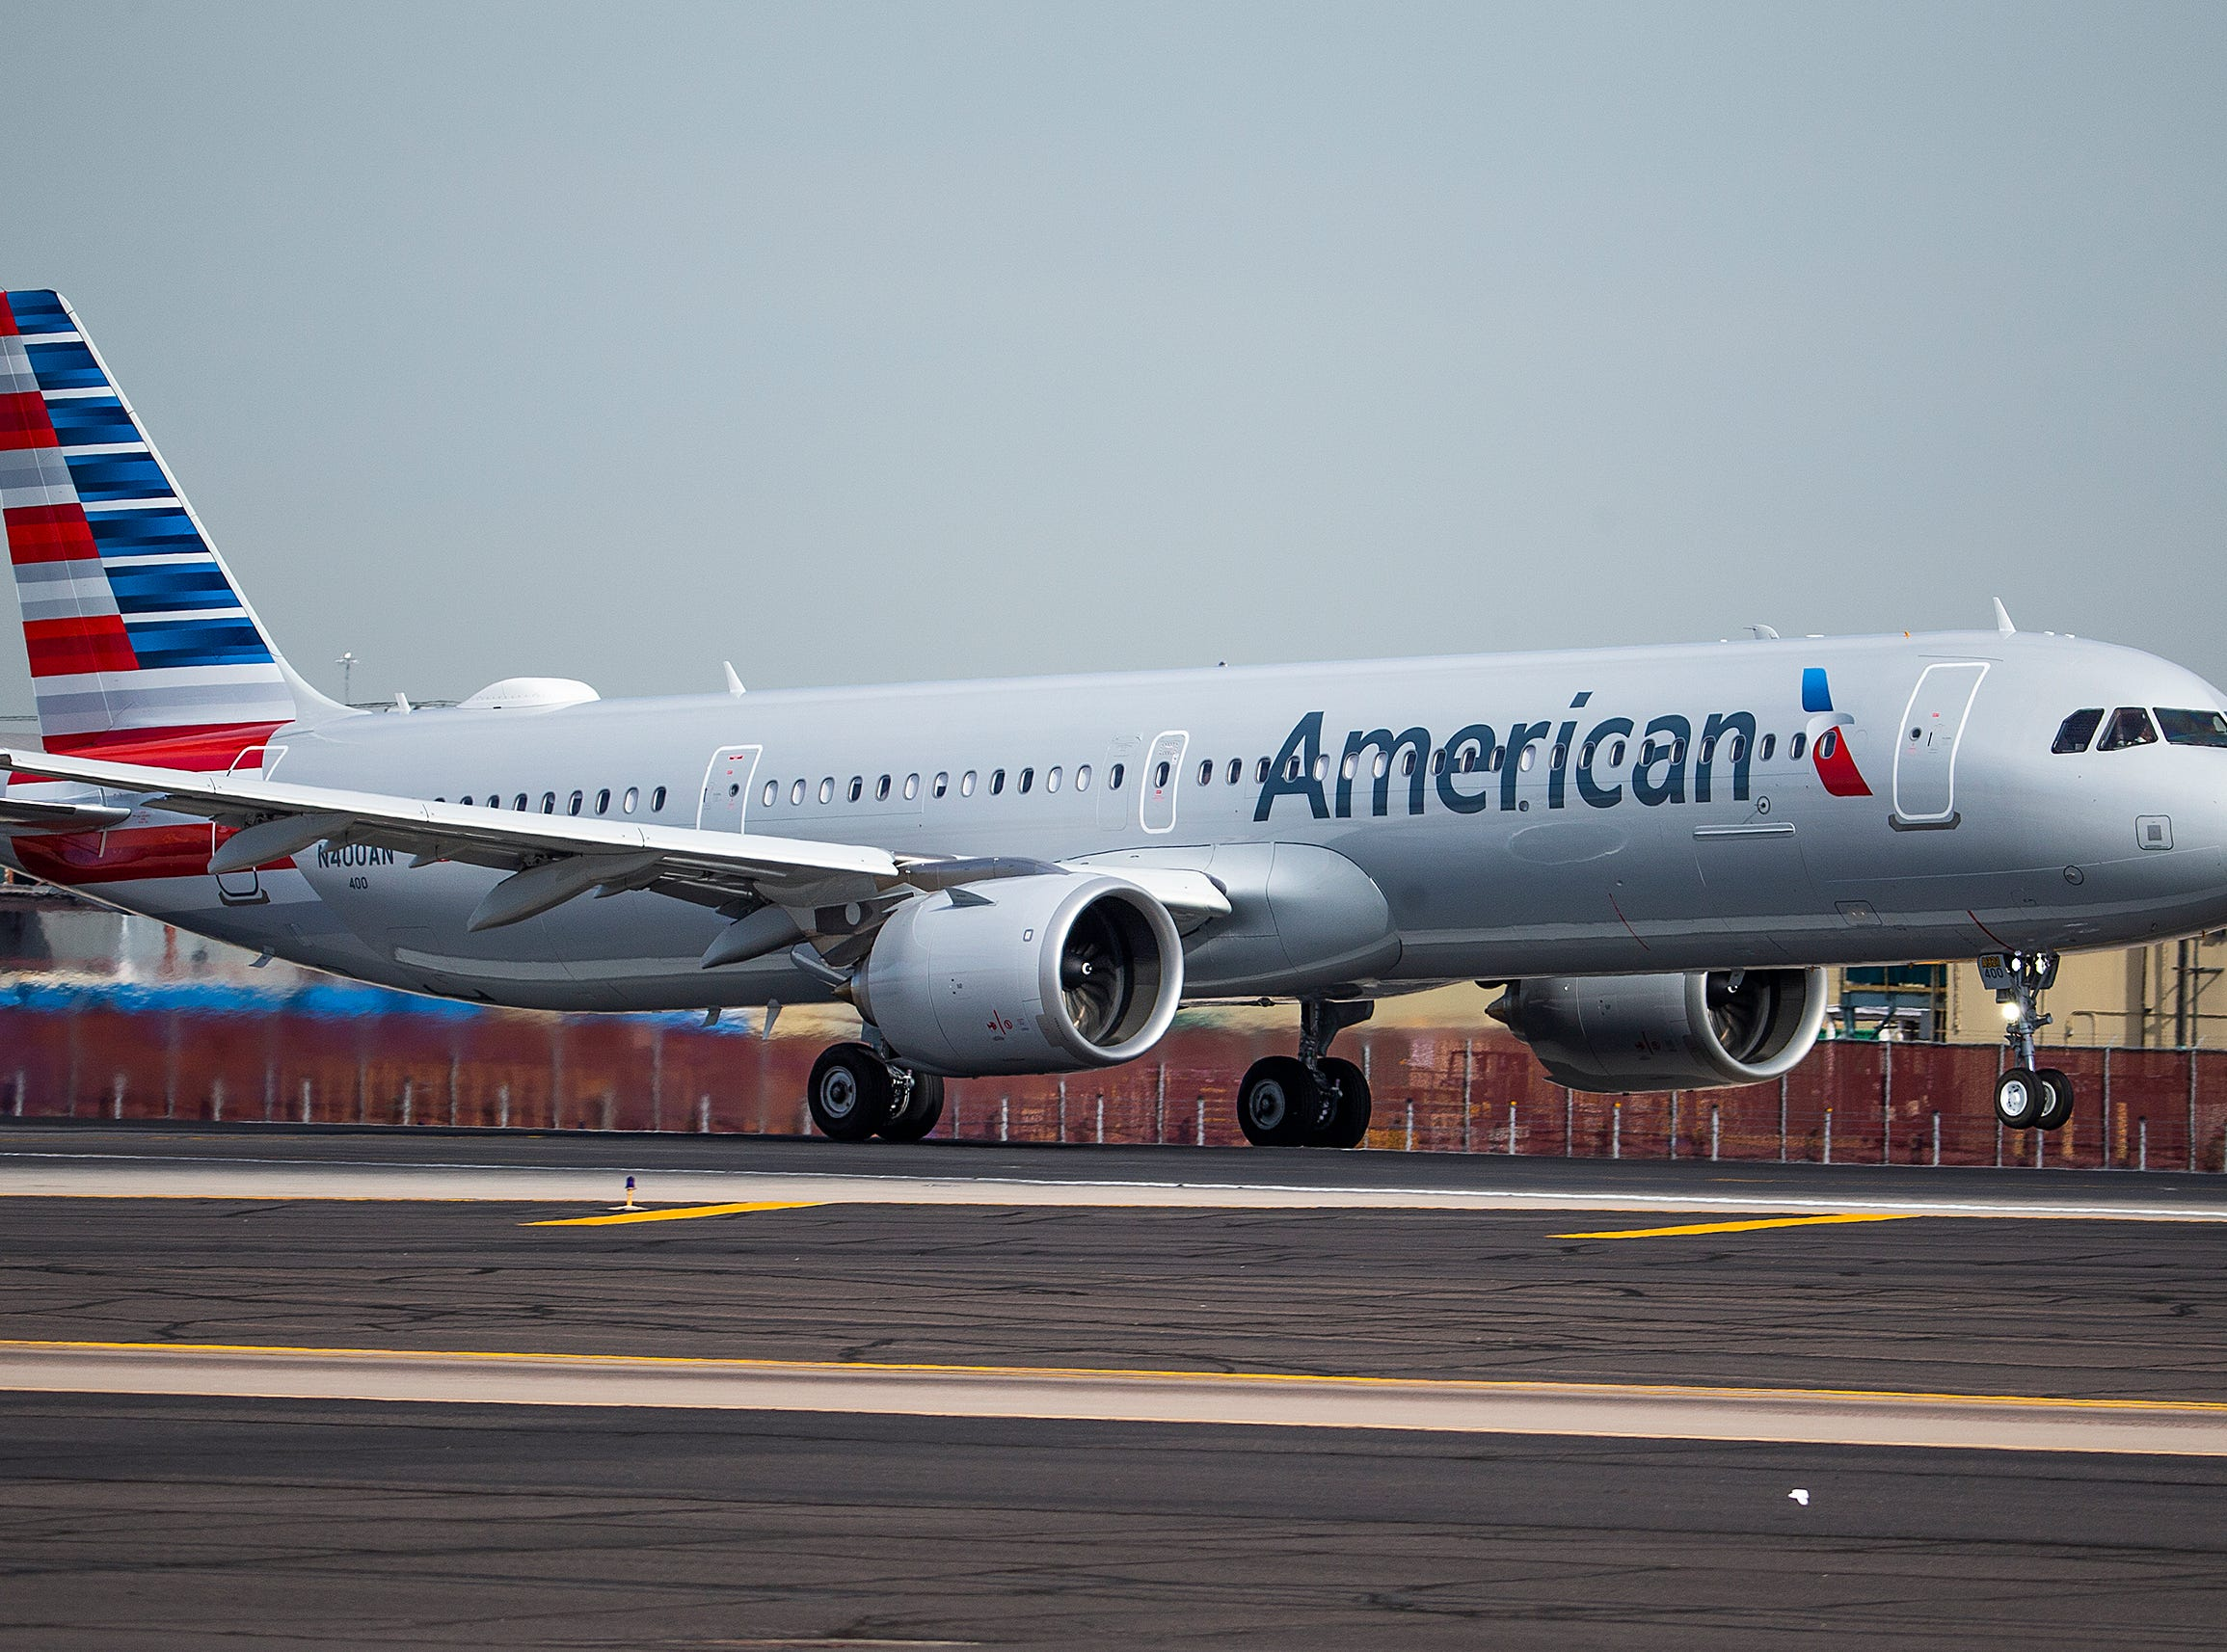 The first flight, from Phoenix Sky Harbor International Airport to Orlando, Florida, takes off on April 2, 2019.